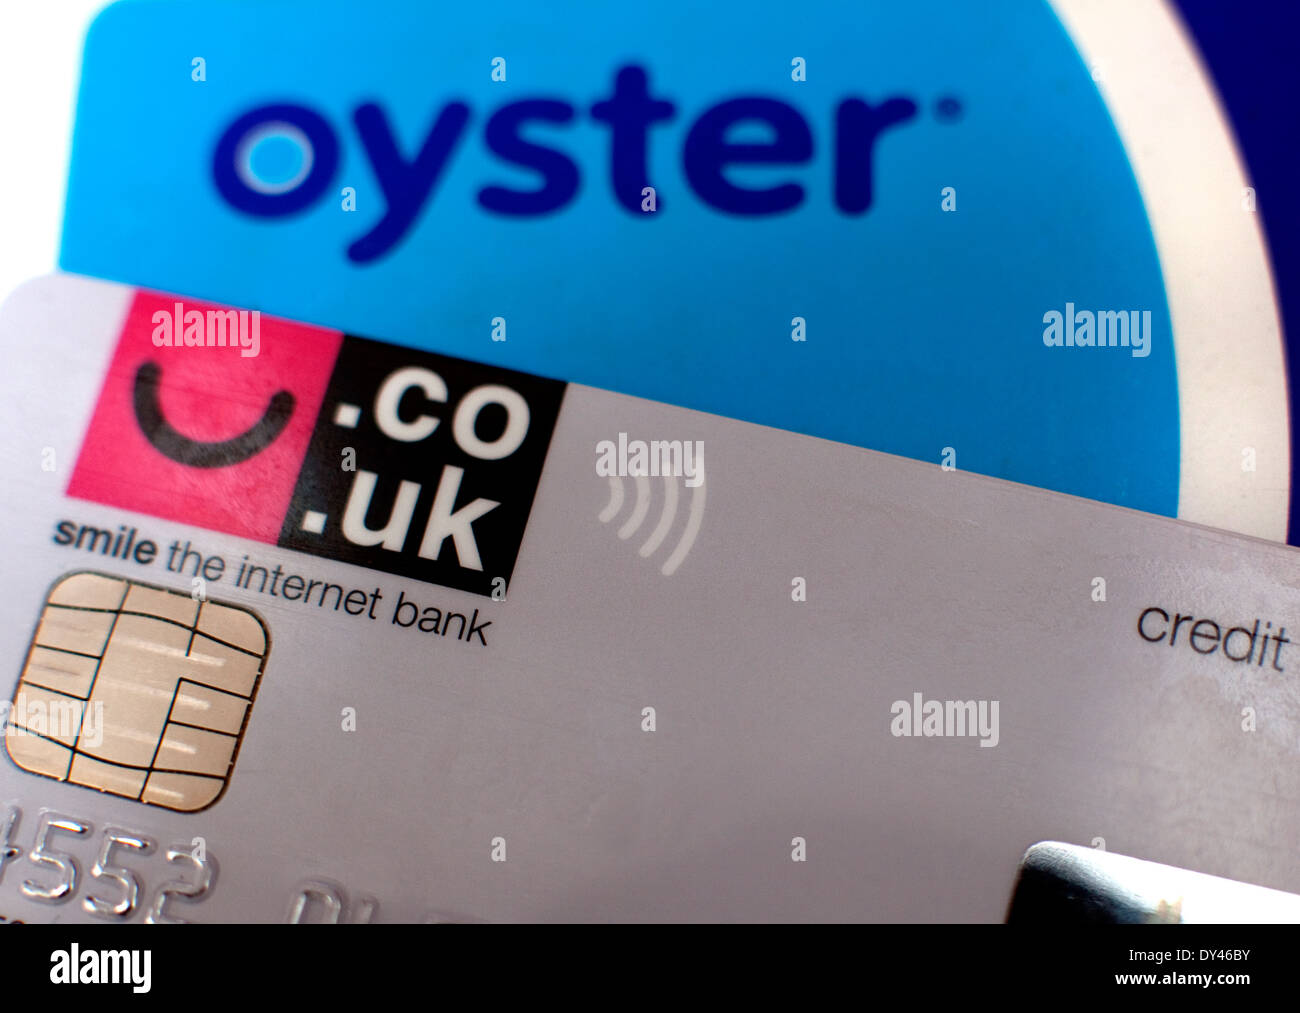 Transport For London warns of 'card clash' between Oyster and banks cards causing double payment - Stock Image